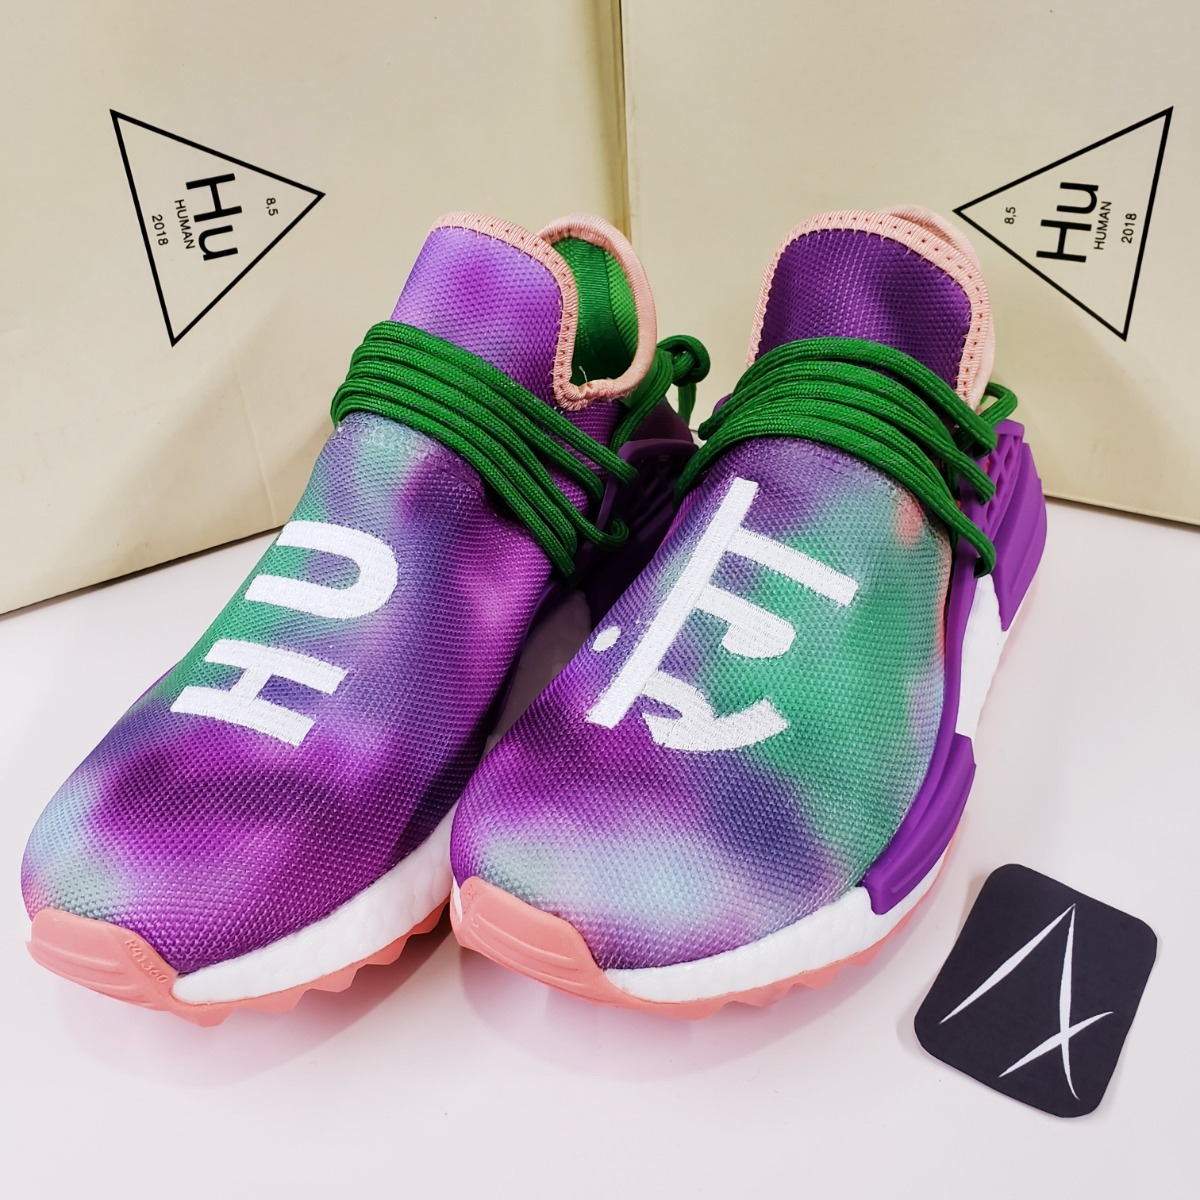 reputable site 0a14f 2e067 adidas Nmd Human Race 1:1 Holi Festival Pharrell Williams